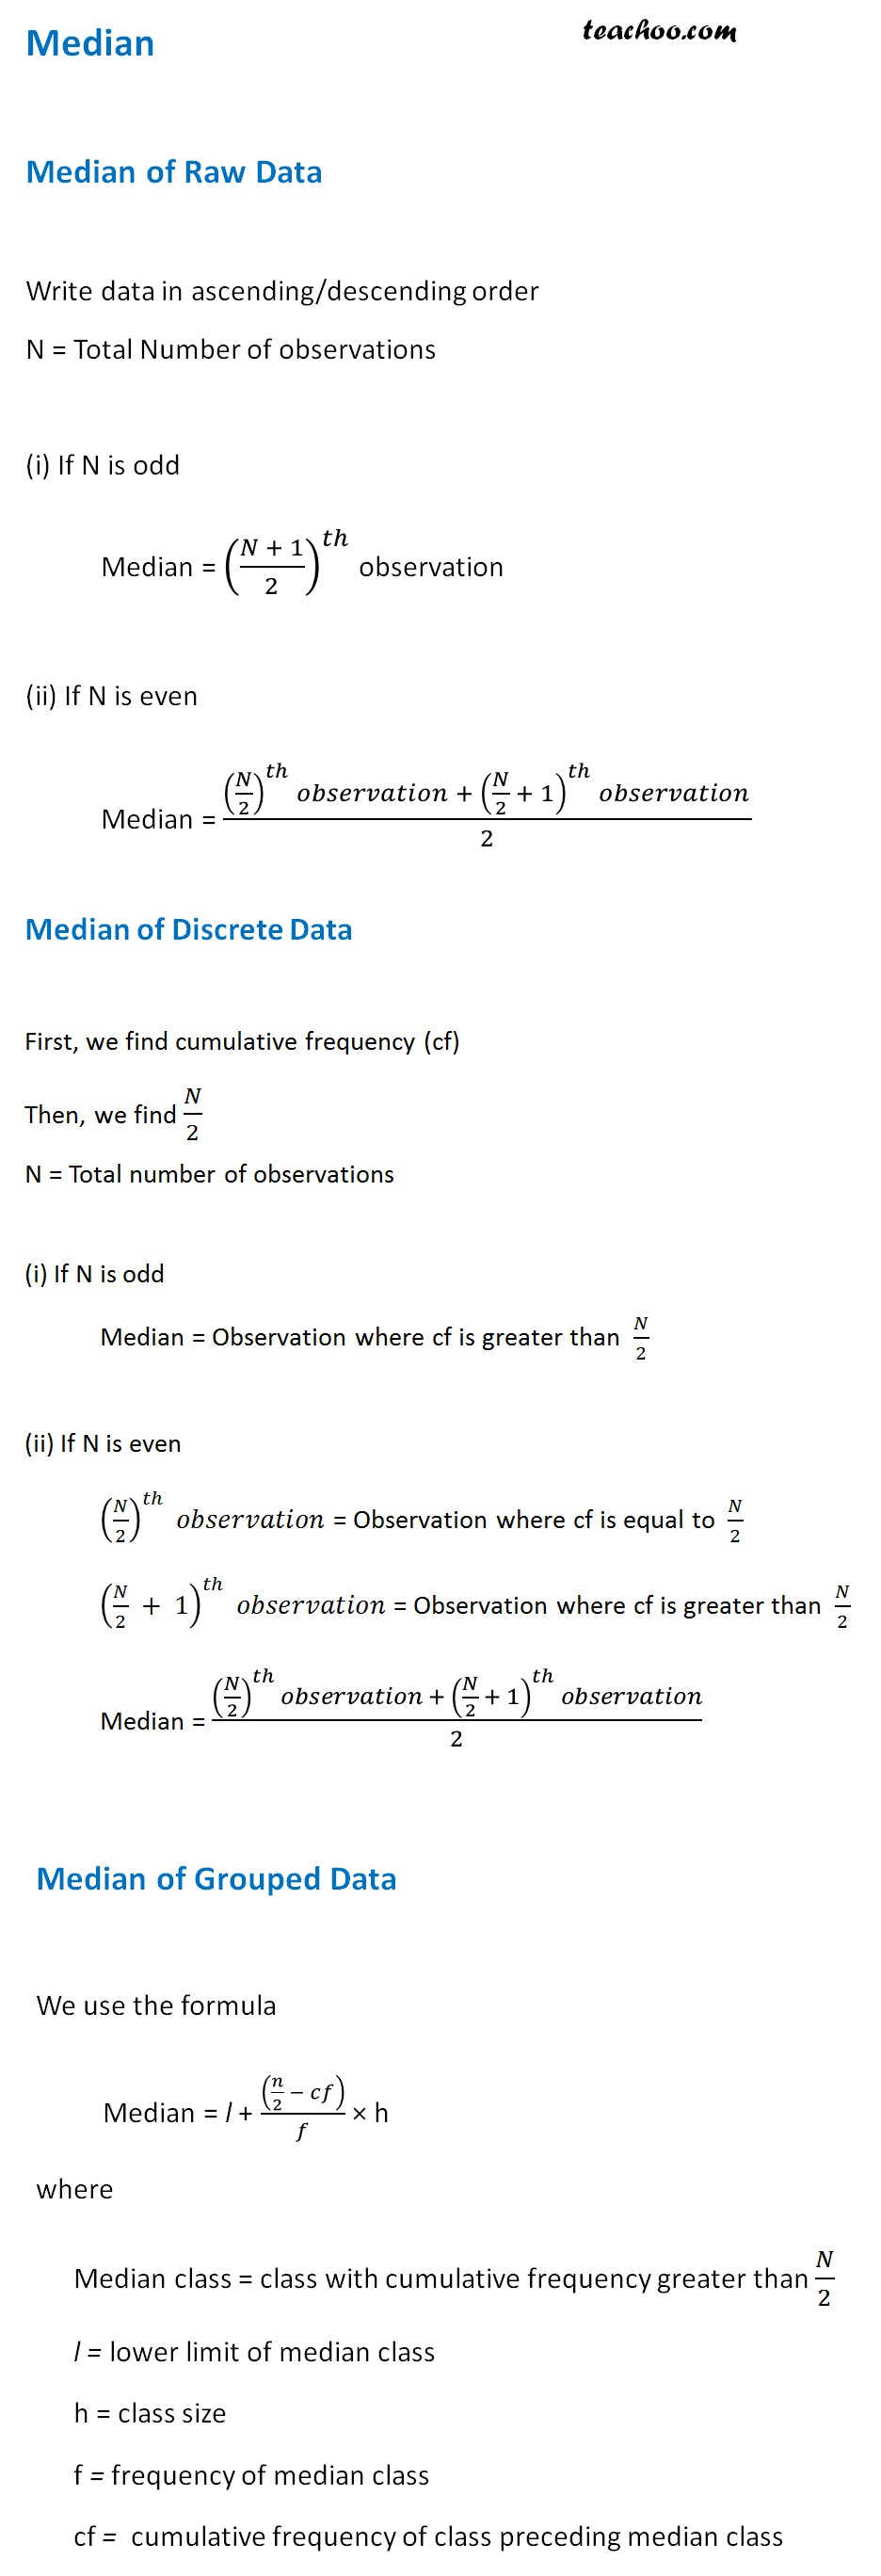 Median of Raw, Discrete and Grouped Data.jpg